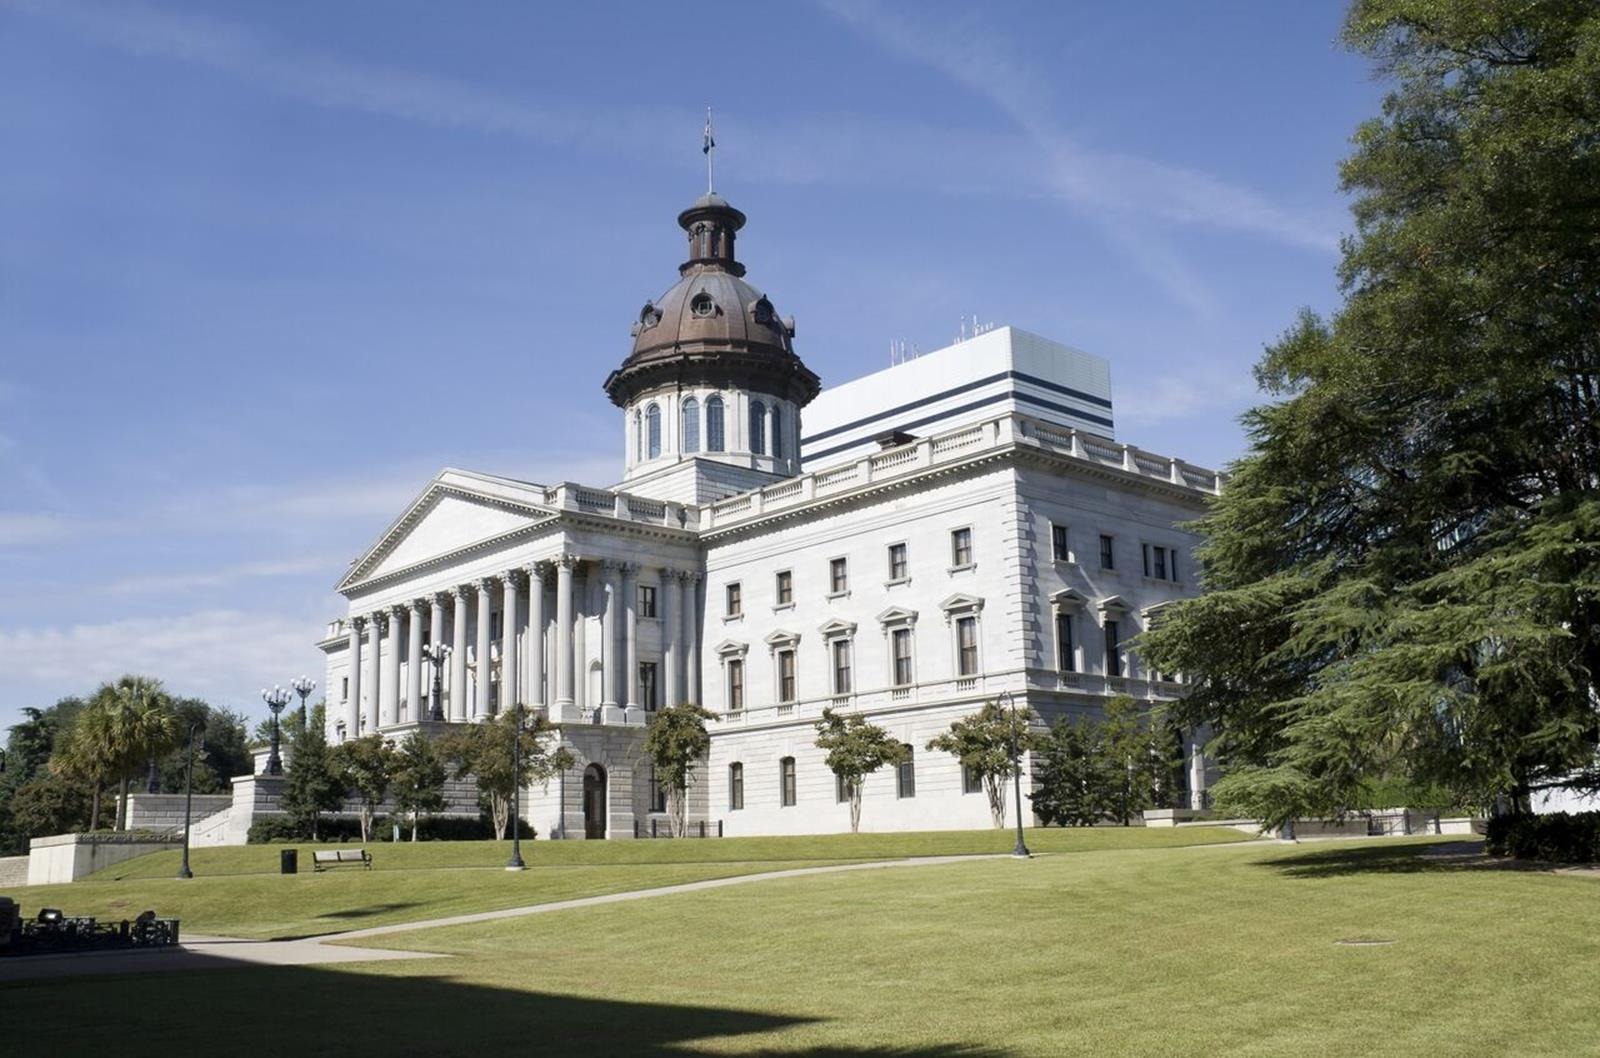 South Carolina Statehouse. Credit: Capital City/Lake Murray Country Regional Tourism Board